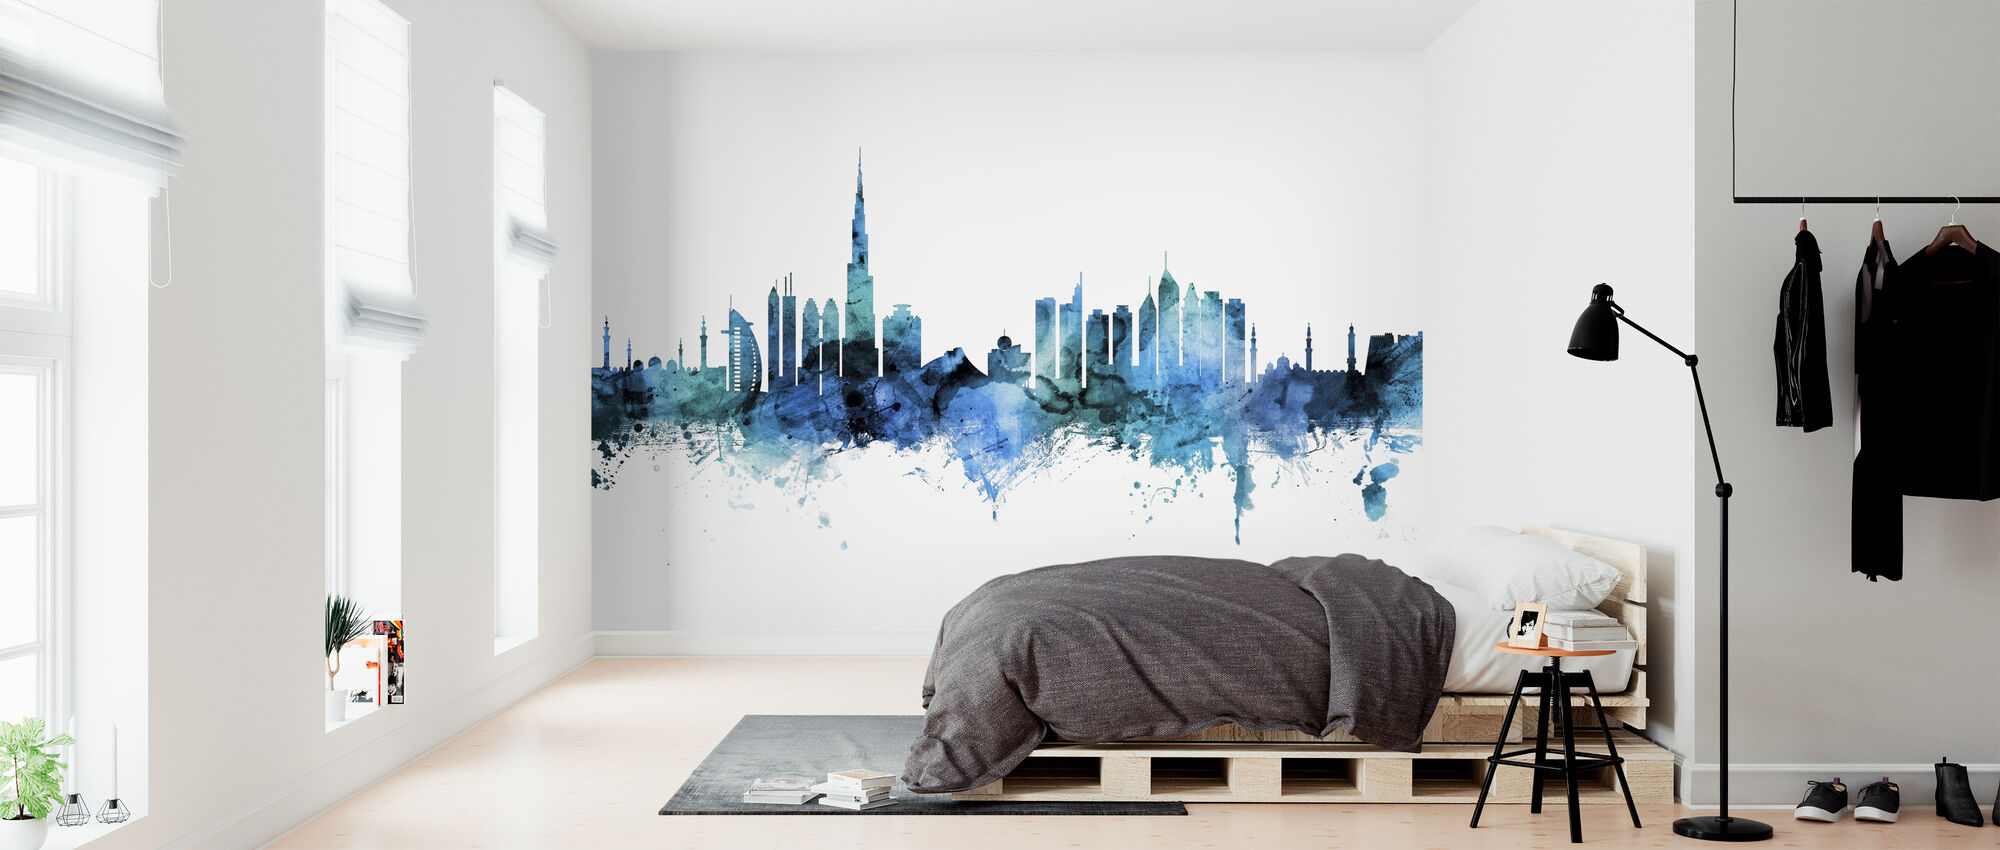 Dubai Skyline - Wallpaper - Bedroom